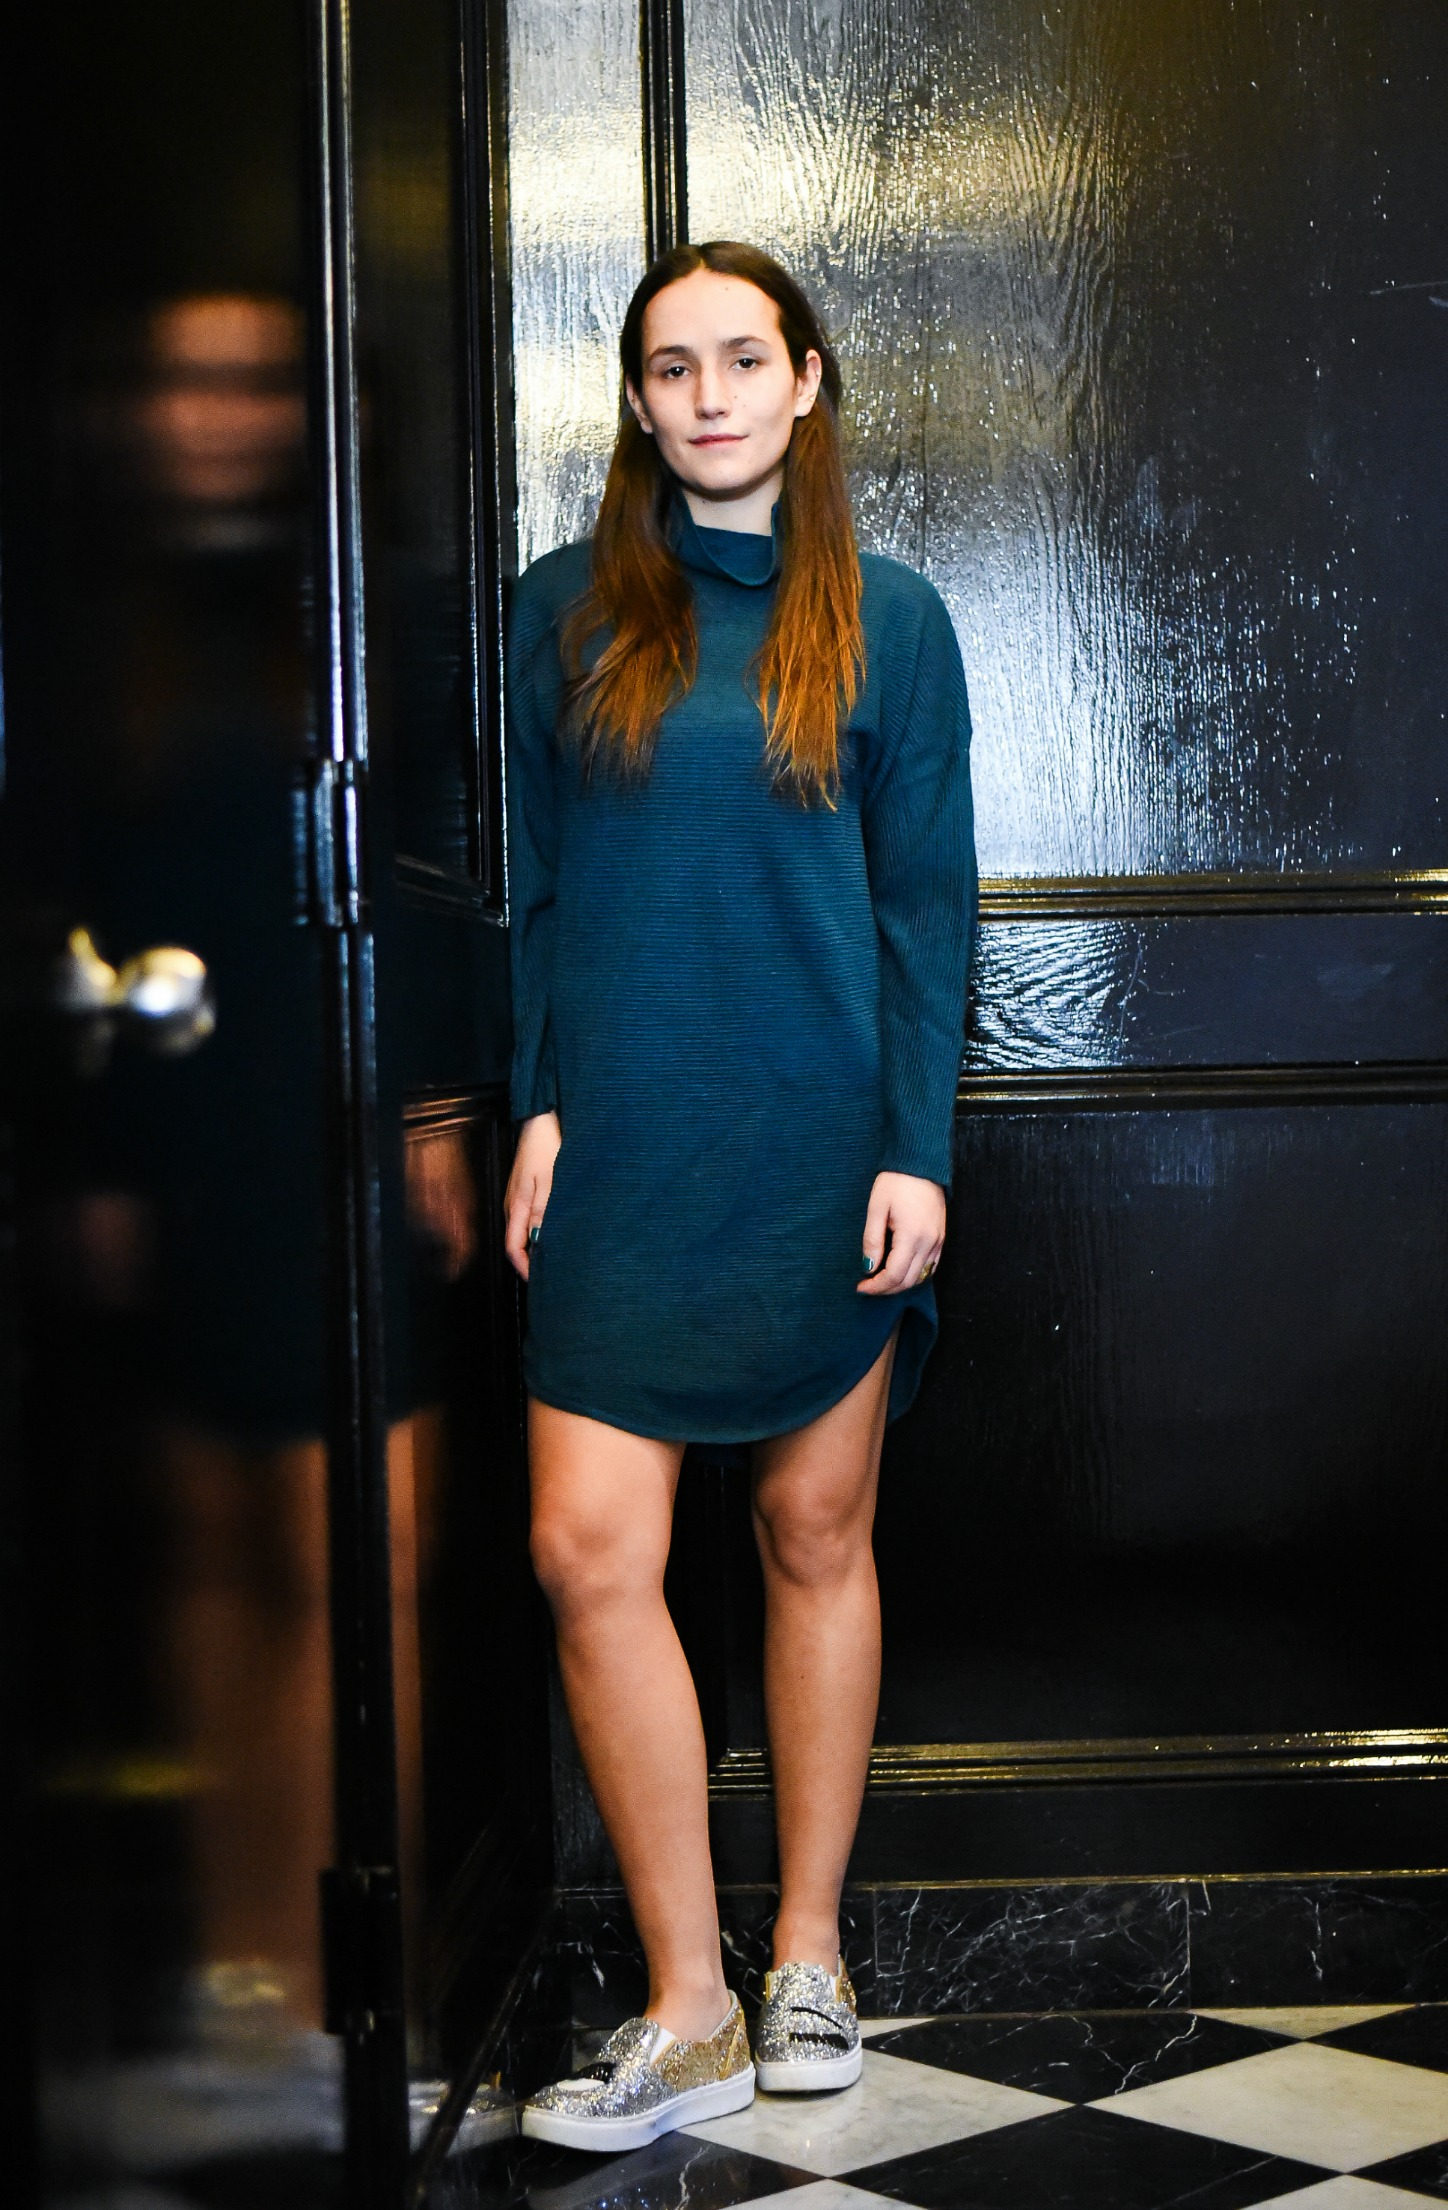 SOPHIE BICKLEY YIN 2MY YANG SISTER FASHION BLOGGERS NYC SWEATER DRESSES POST